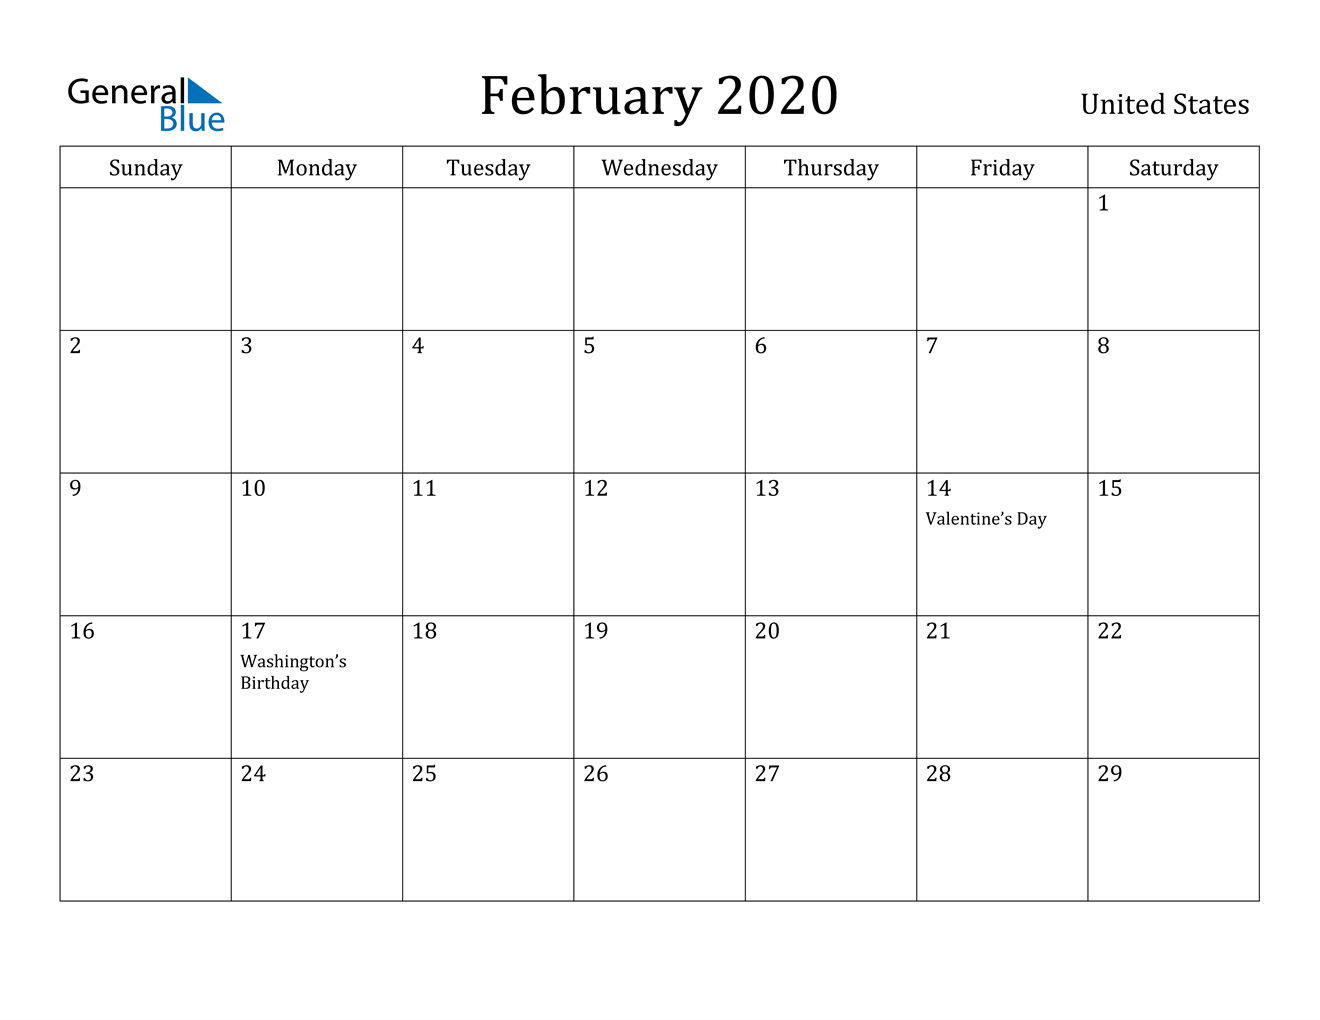 Image of February 2020 United States Calendar with Holidays Calendar